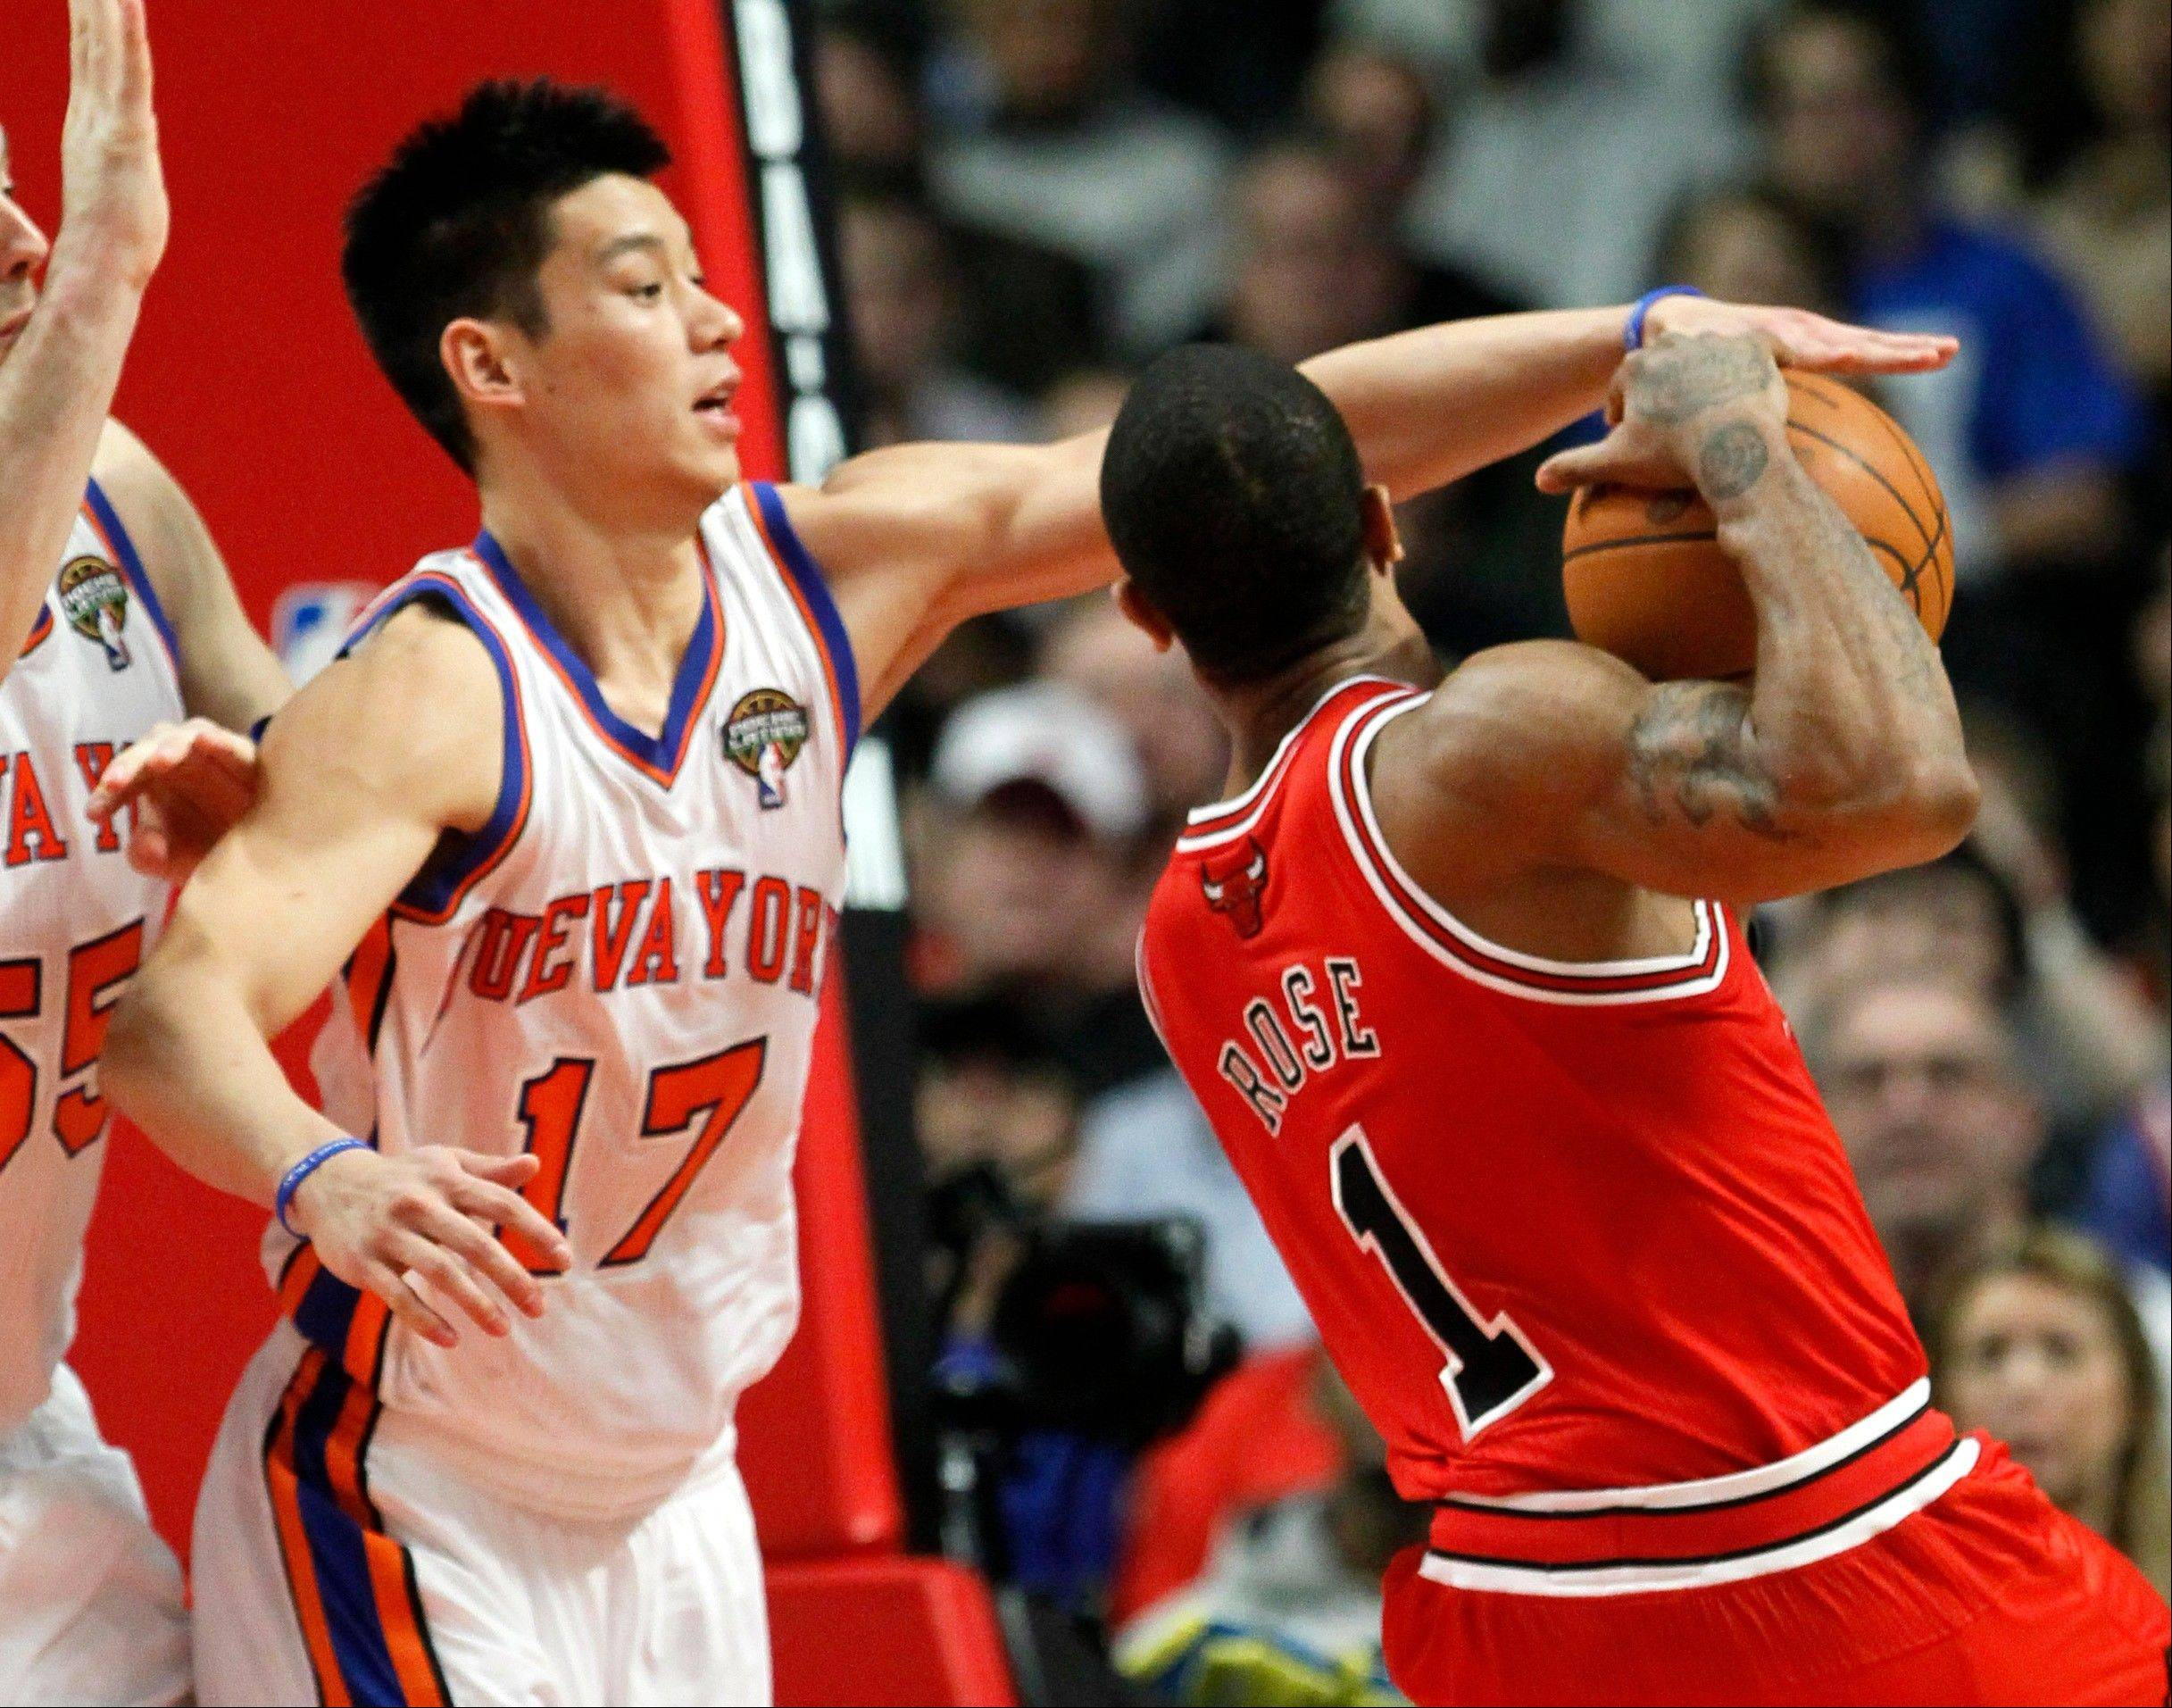 New York Knicks guard Jeremy Lin tries to block the shot of Bulls guard Derrick Rose in a game last week.